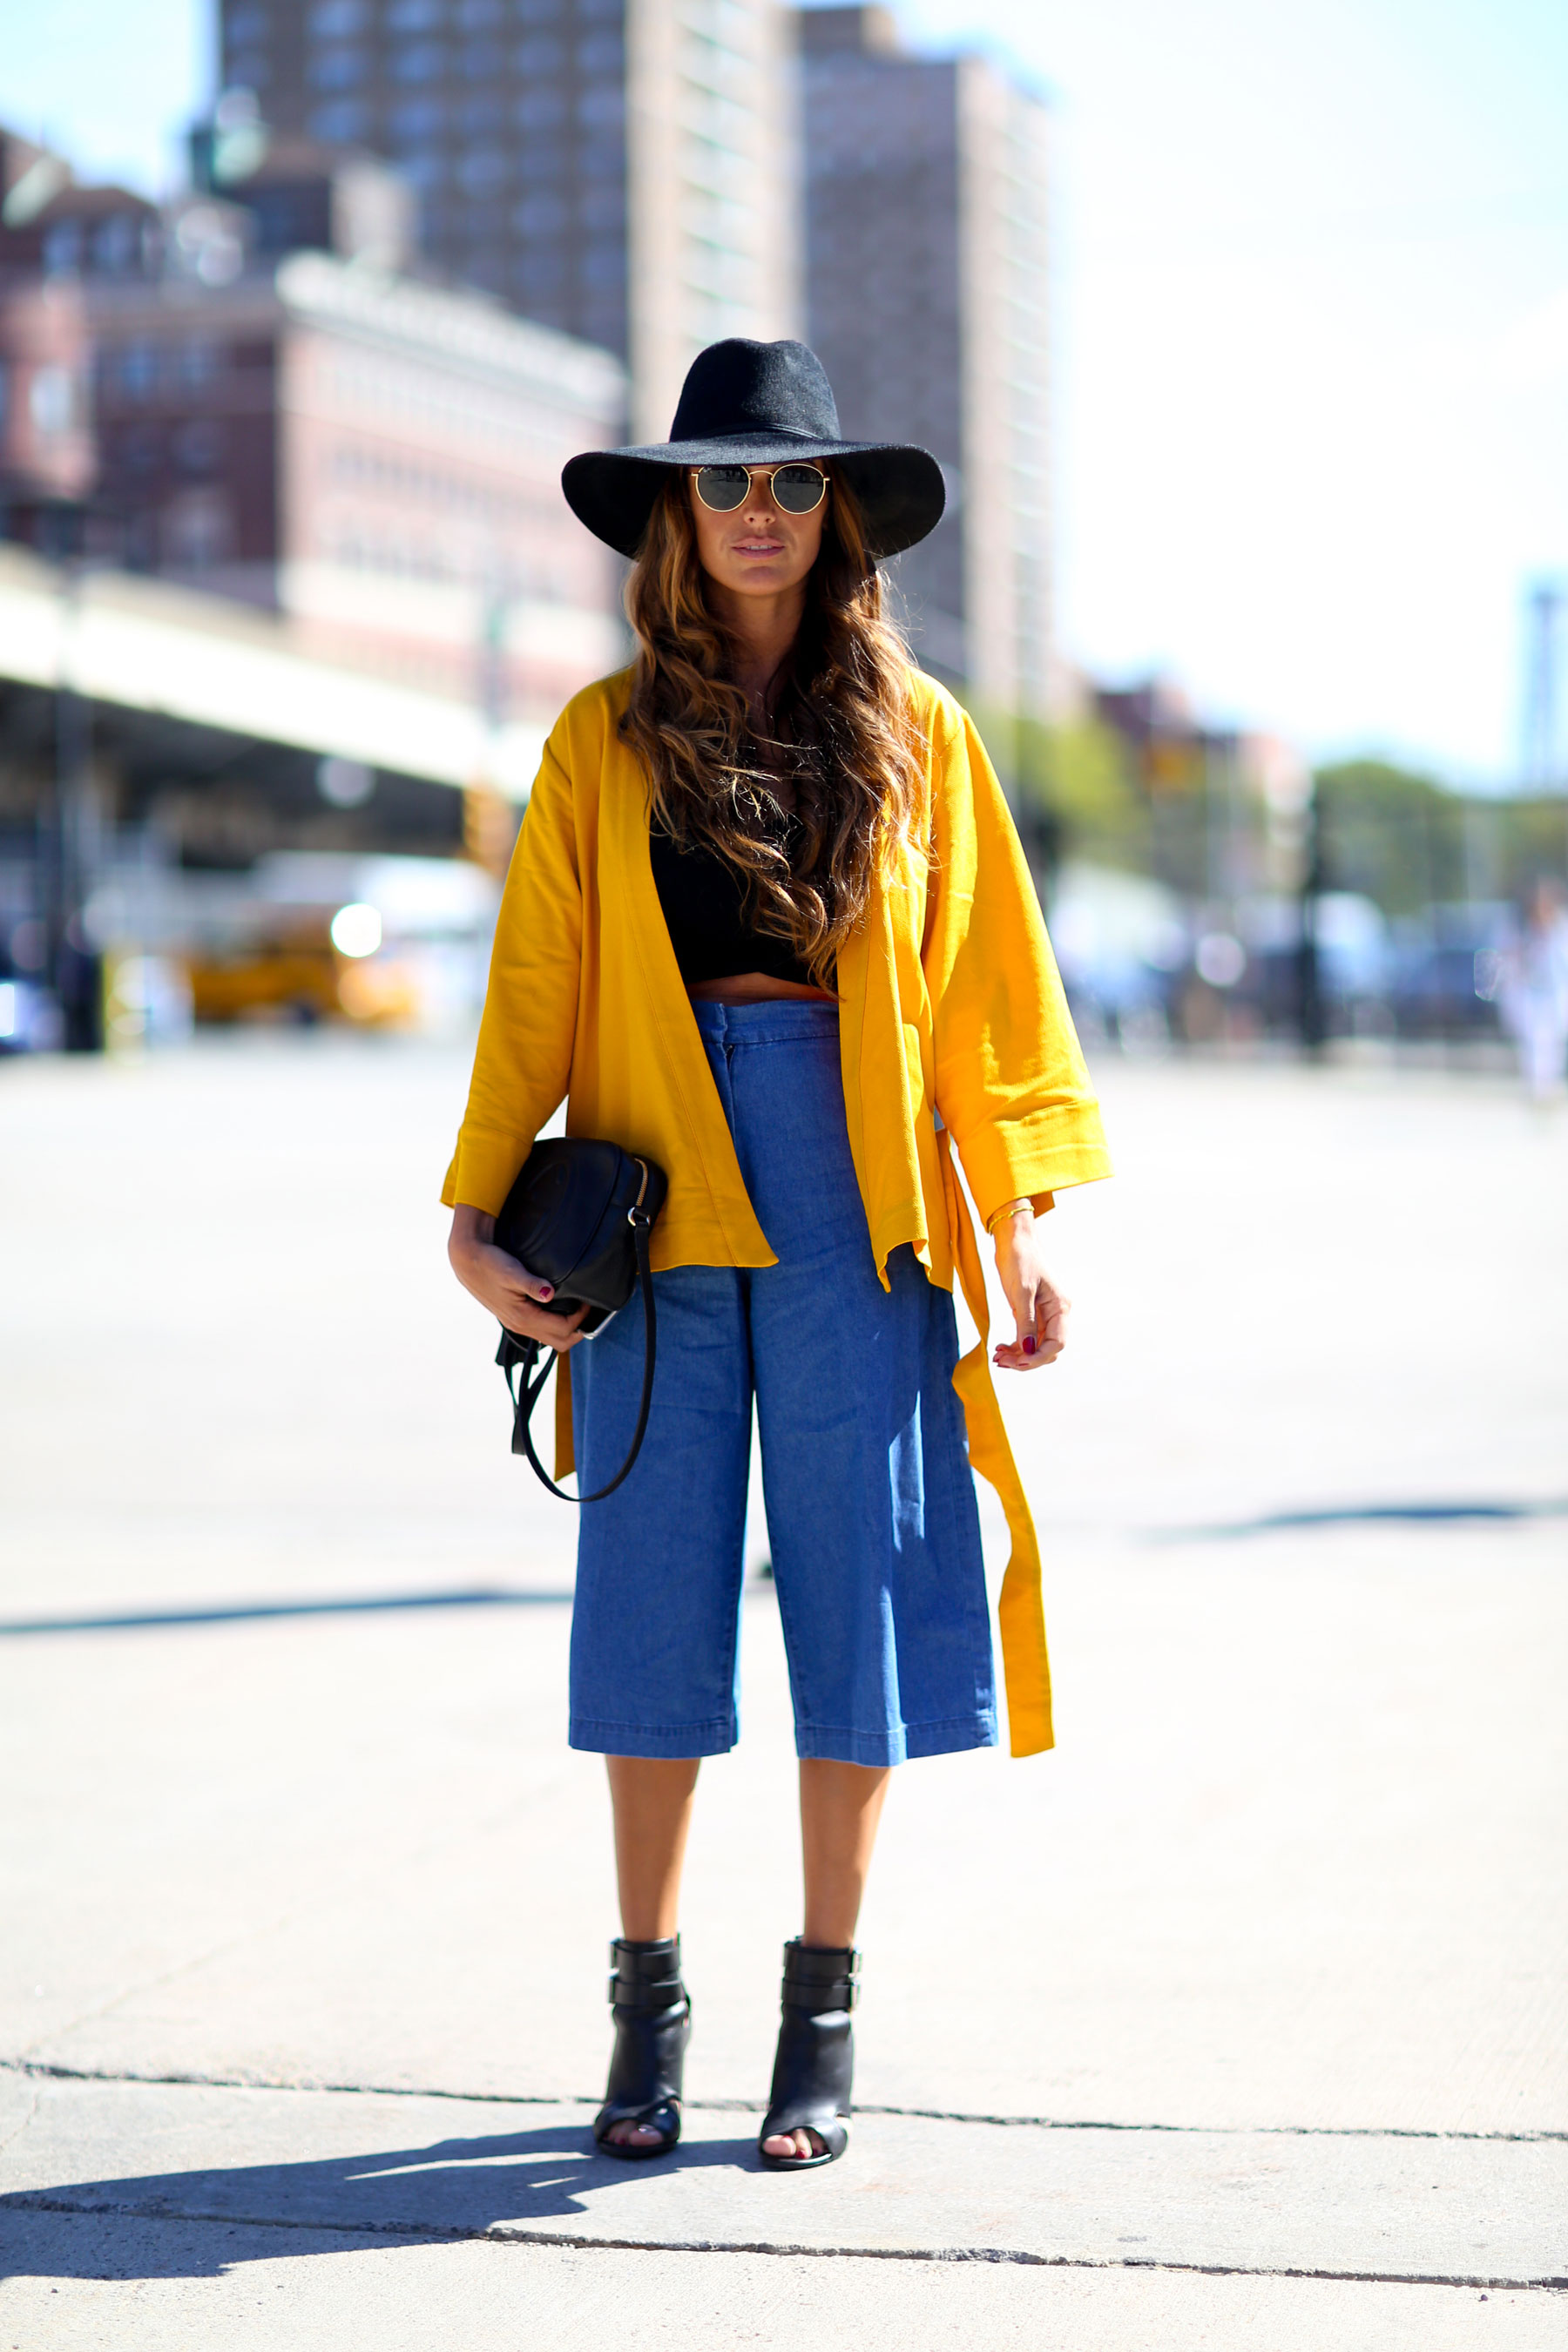 NEW-YORK-FASHION-WEEK-STREETS-STYLE-DAY5-spring-2016-fashion-show-the-impression-40